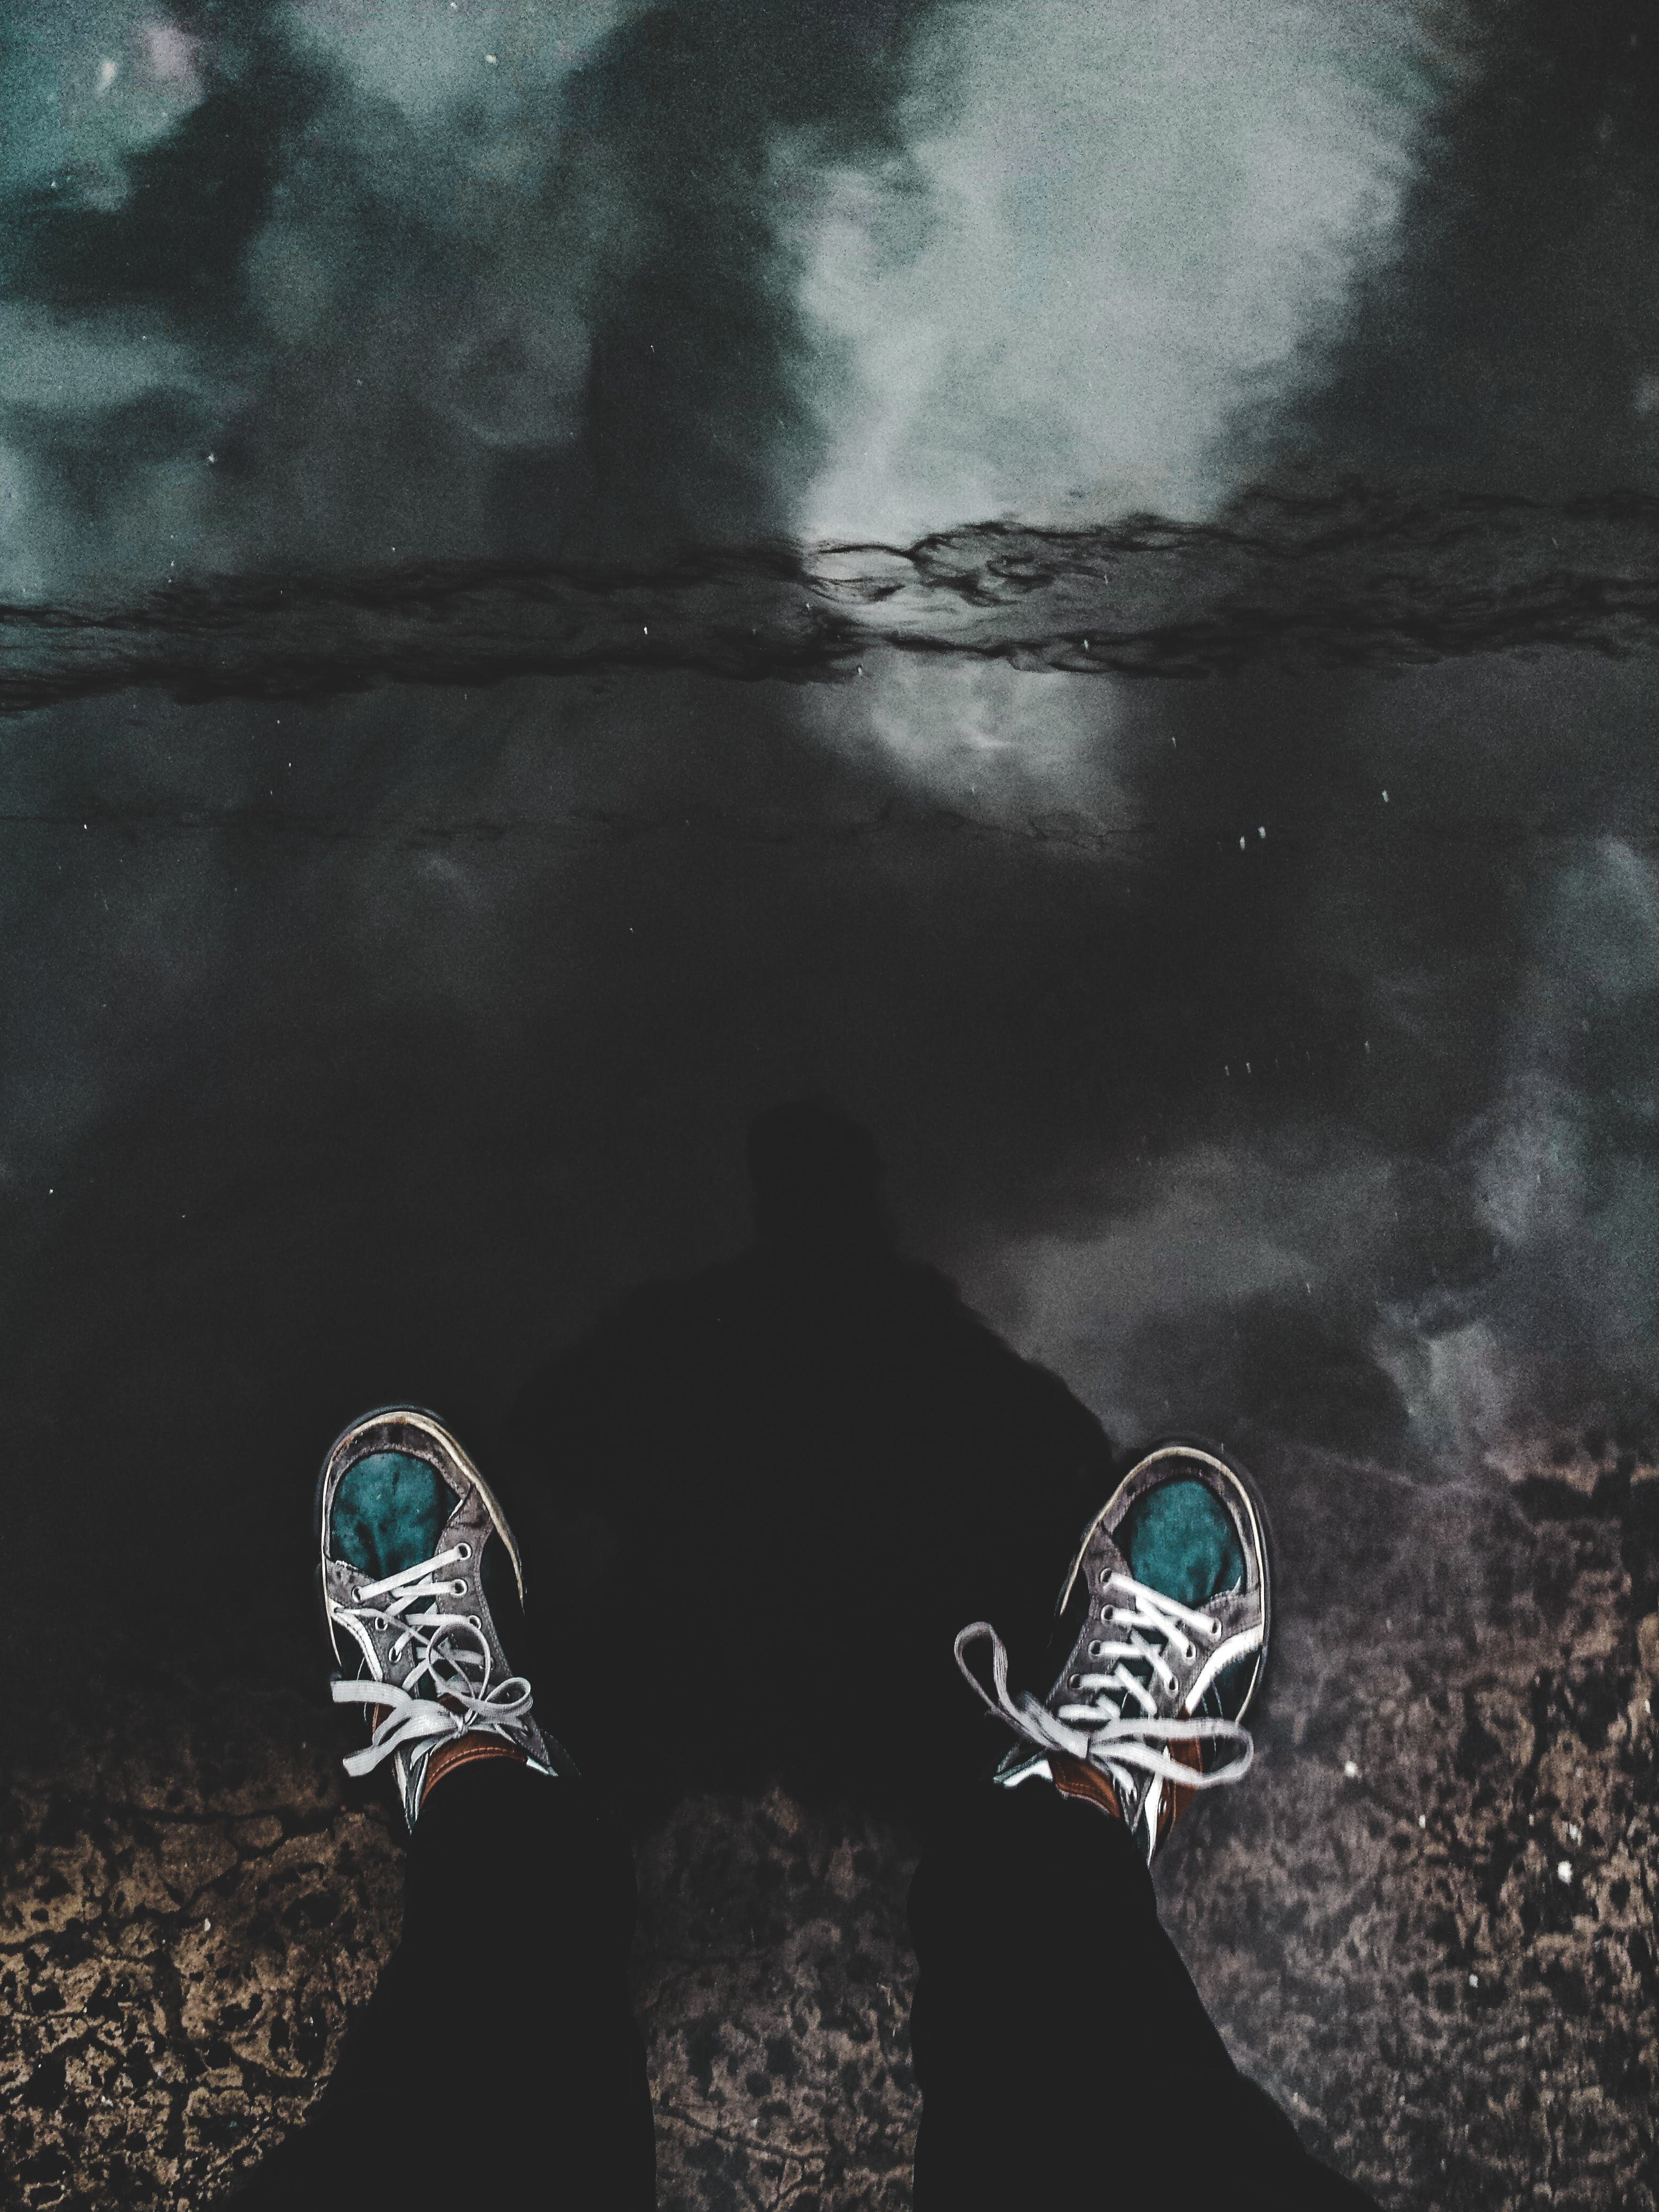 Person Near Puddle